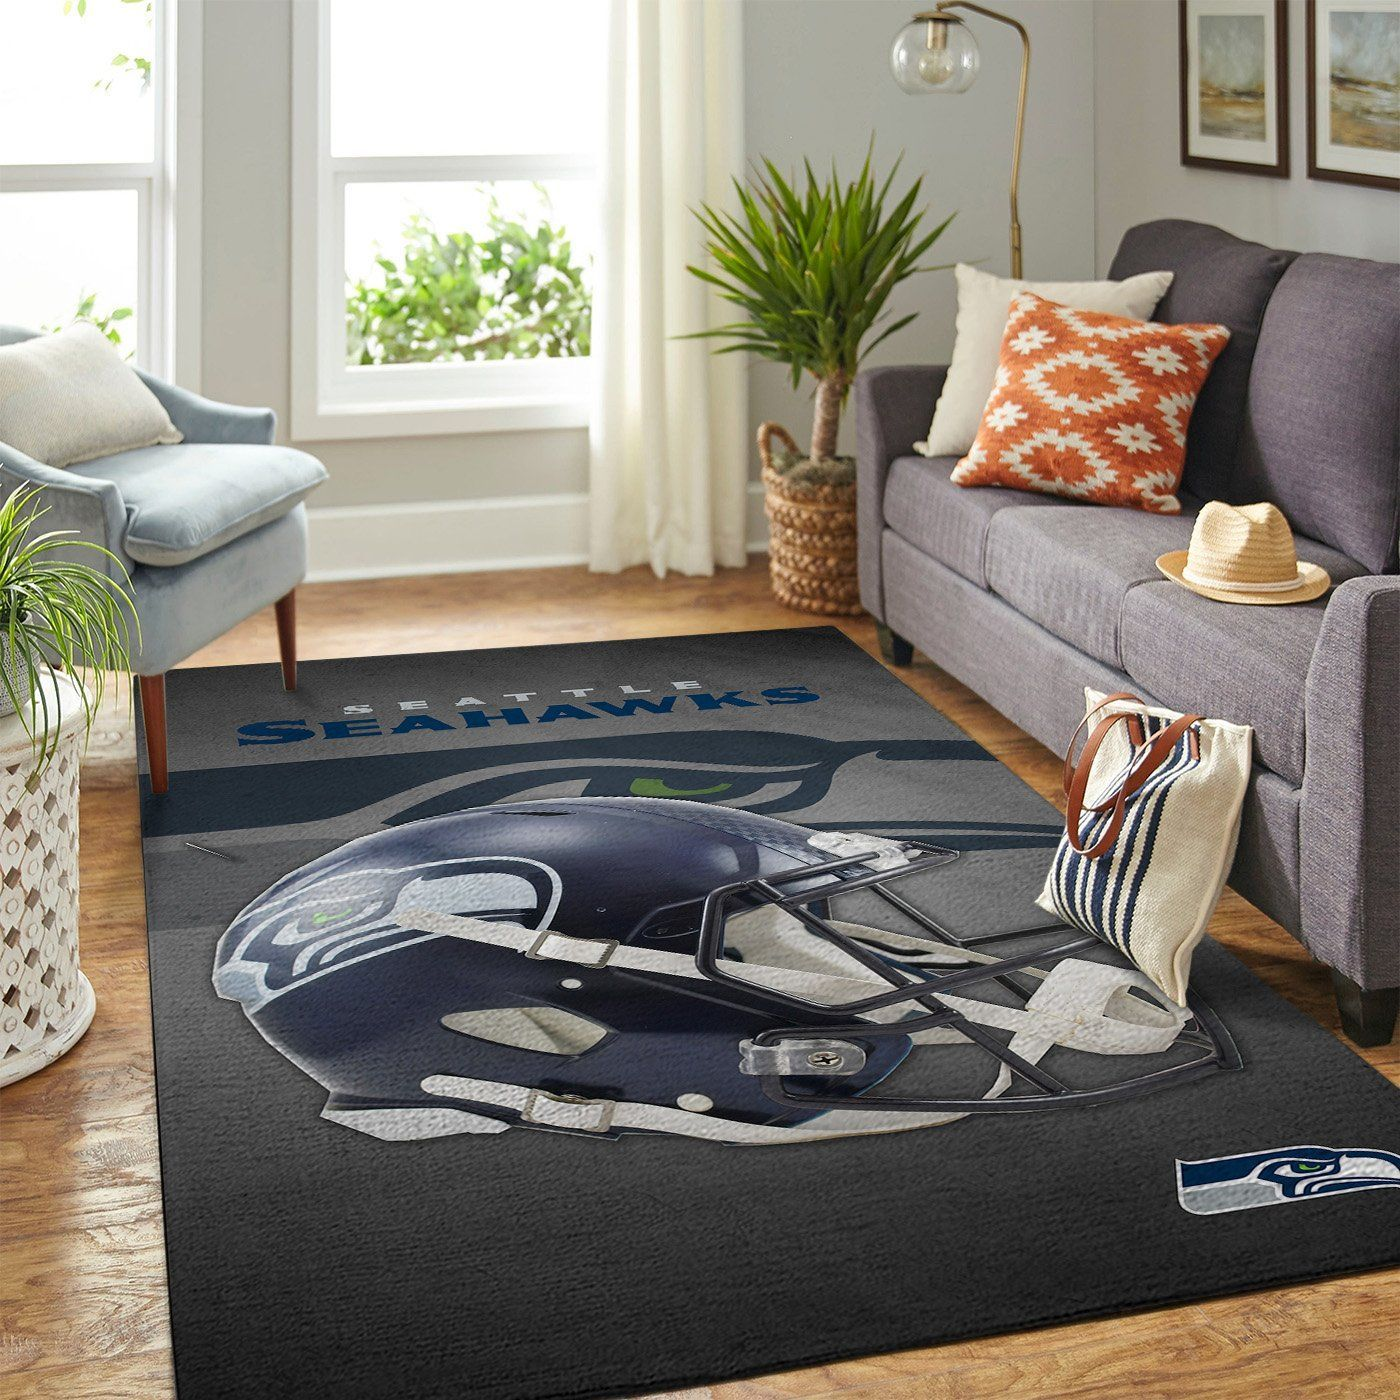 Amazon Seattle Seahawks Living Room Area No4972 Rug